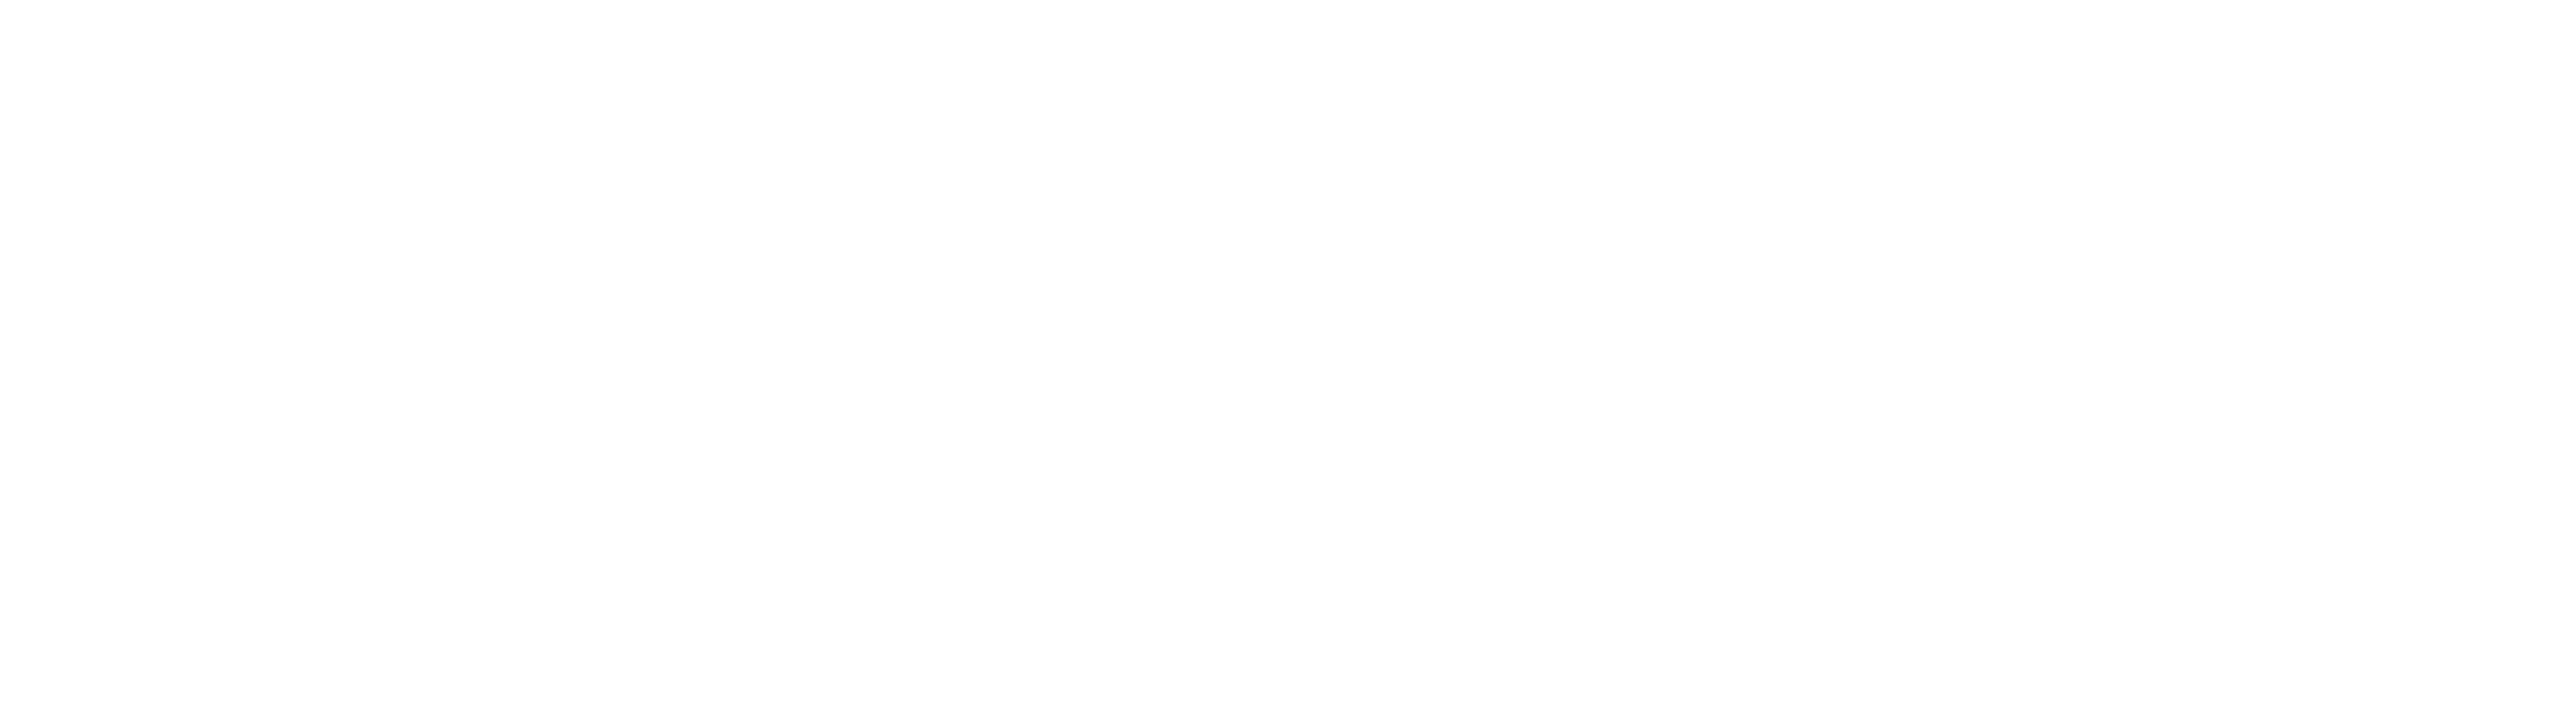 Westchester Flowers & Gifts - Flower Delivery in Yonkers, NY